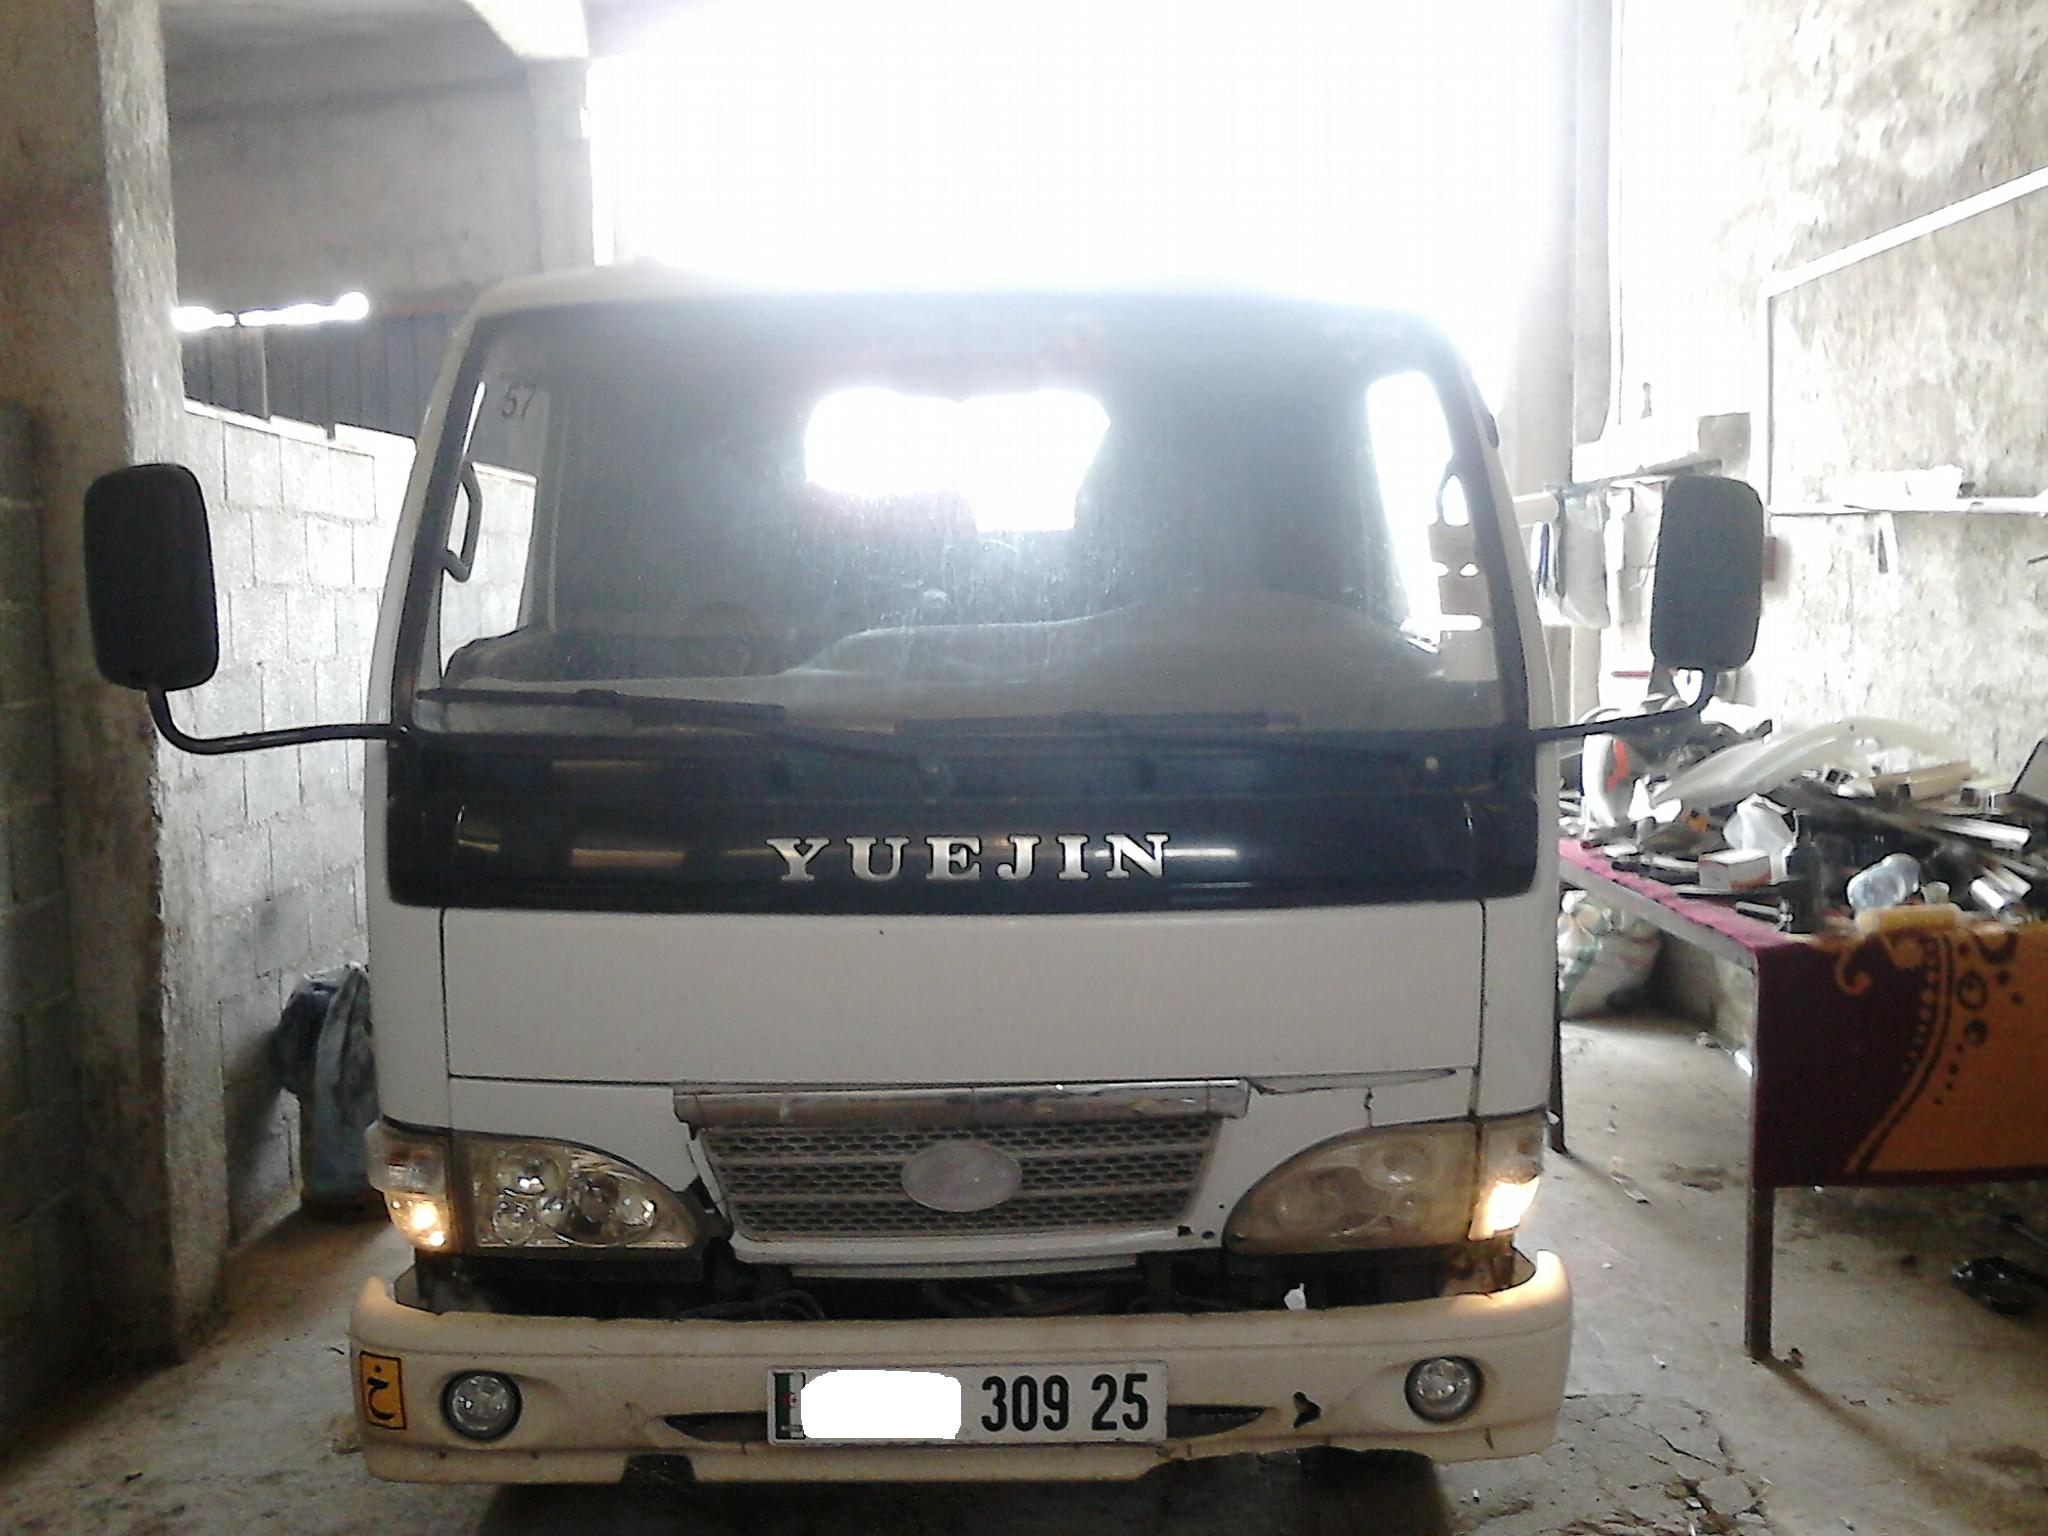 camion yuejin a vendre 2009 ouedkniss